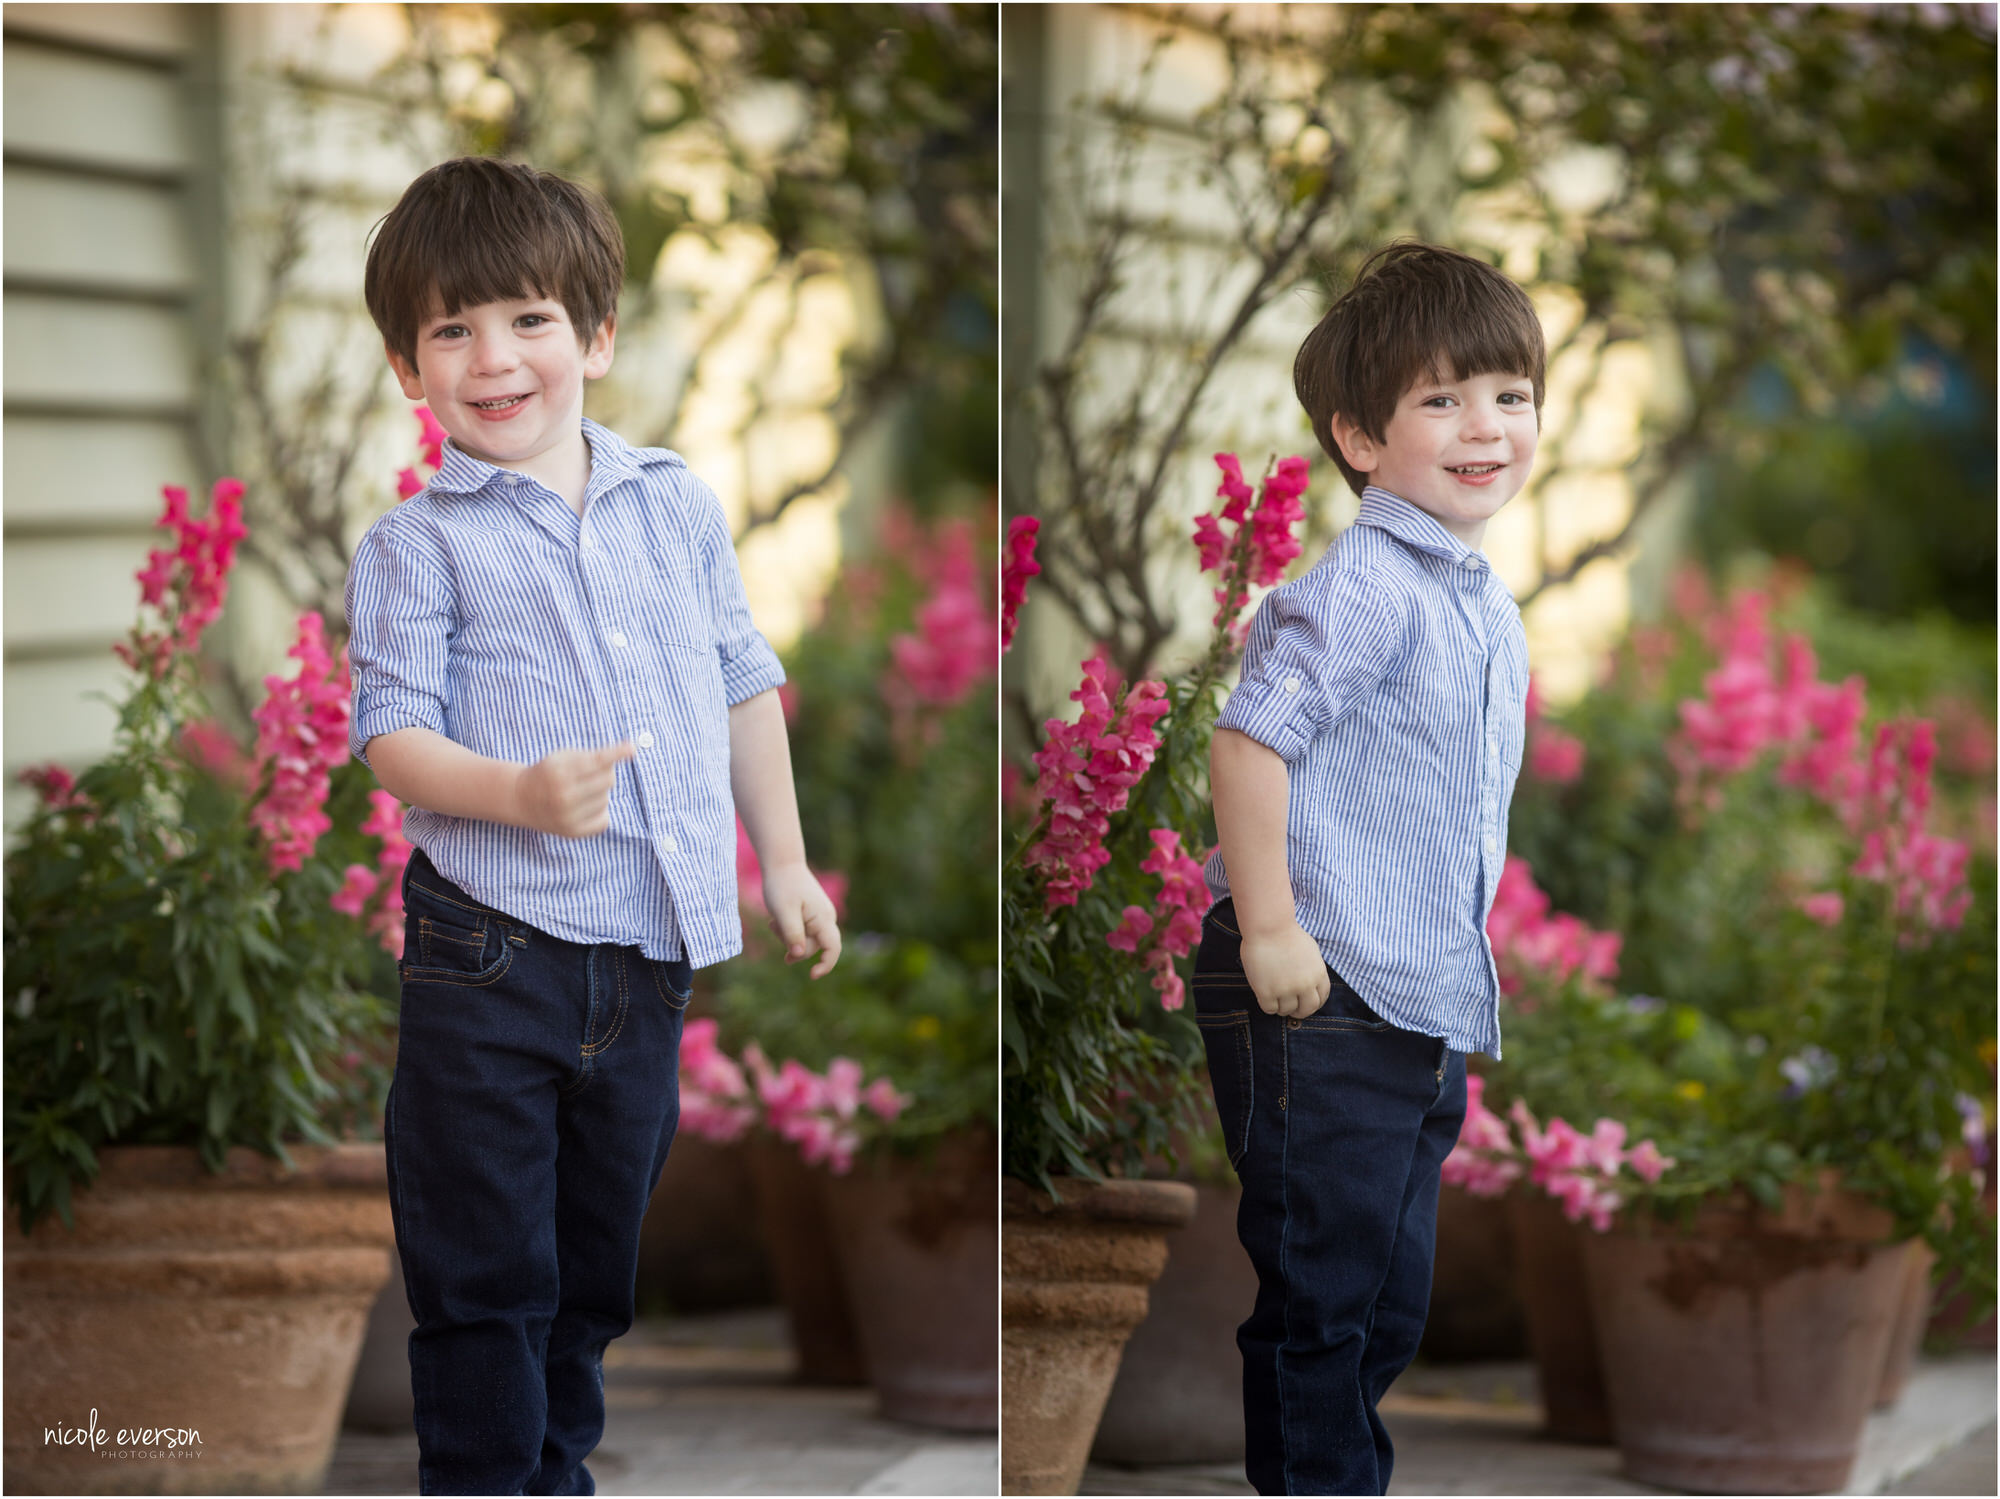 Four year old boy in striped shirt and jeans at Seaside Beach Garden. Nicole Everson Photography. Seaside Beach Photgrapher.